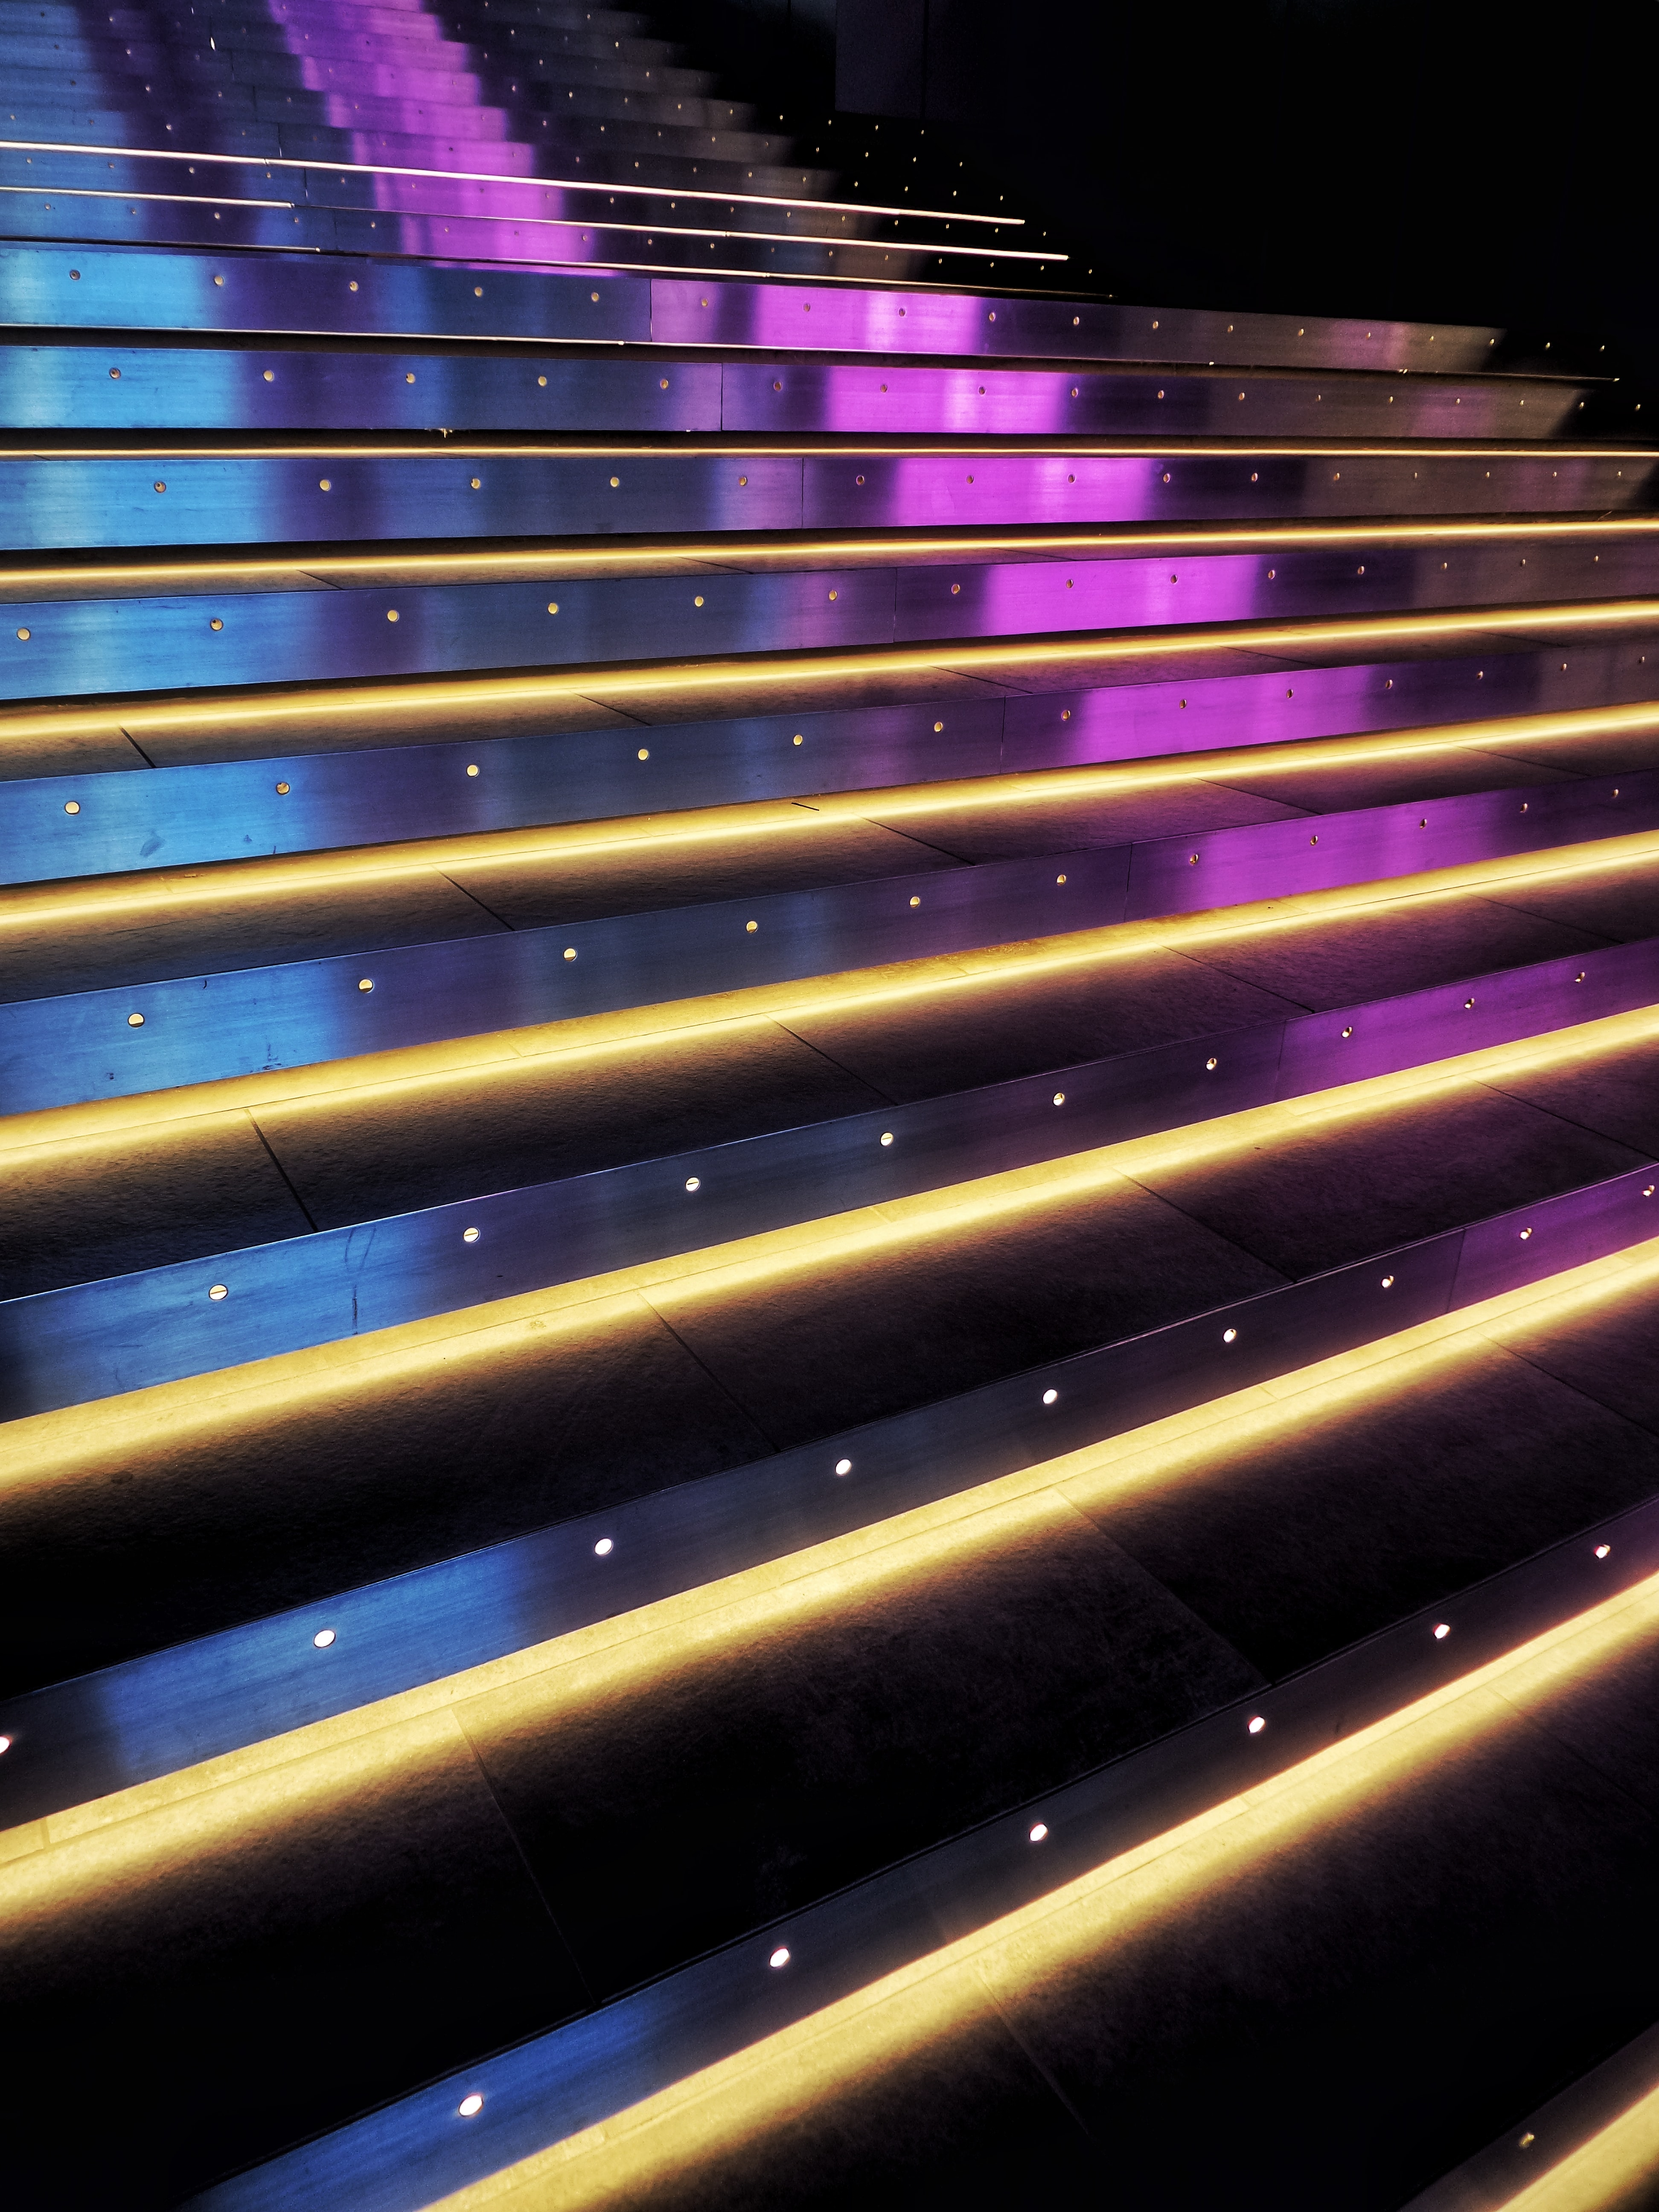 97817 download wallpaper Miscellanea, Miscellaneous, Stairs, Ladder, Steps, Neon, Backlight, Illumination, Shine, Light screensavers and pictures for free